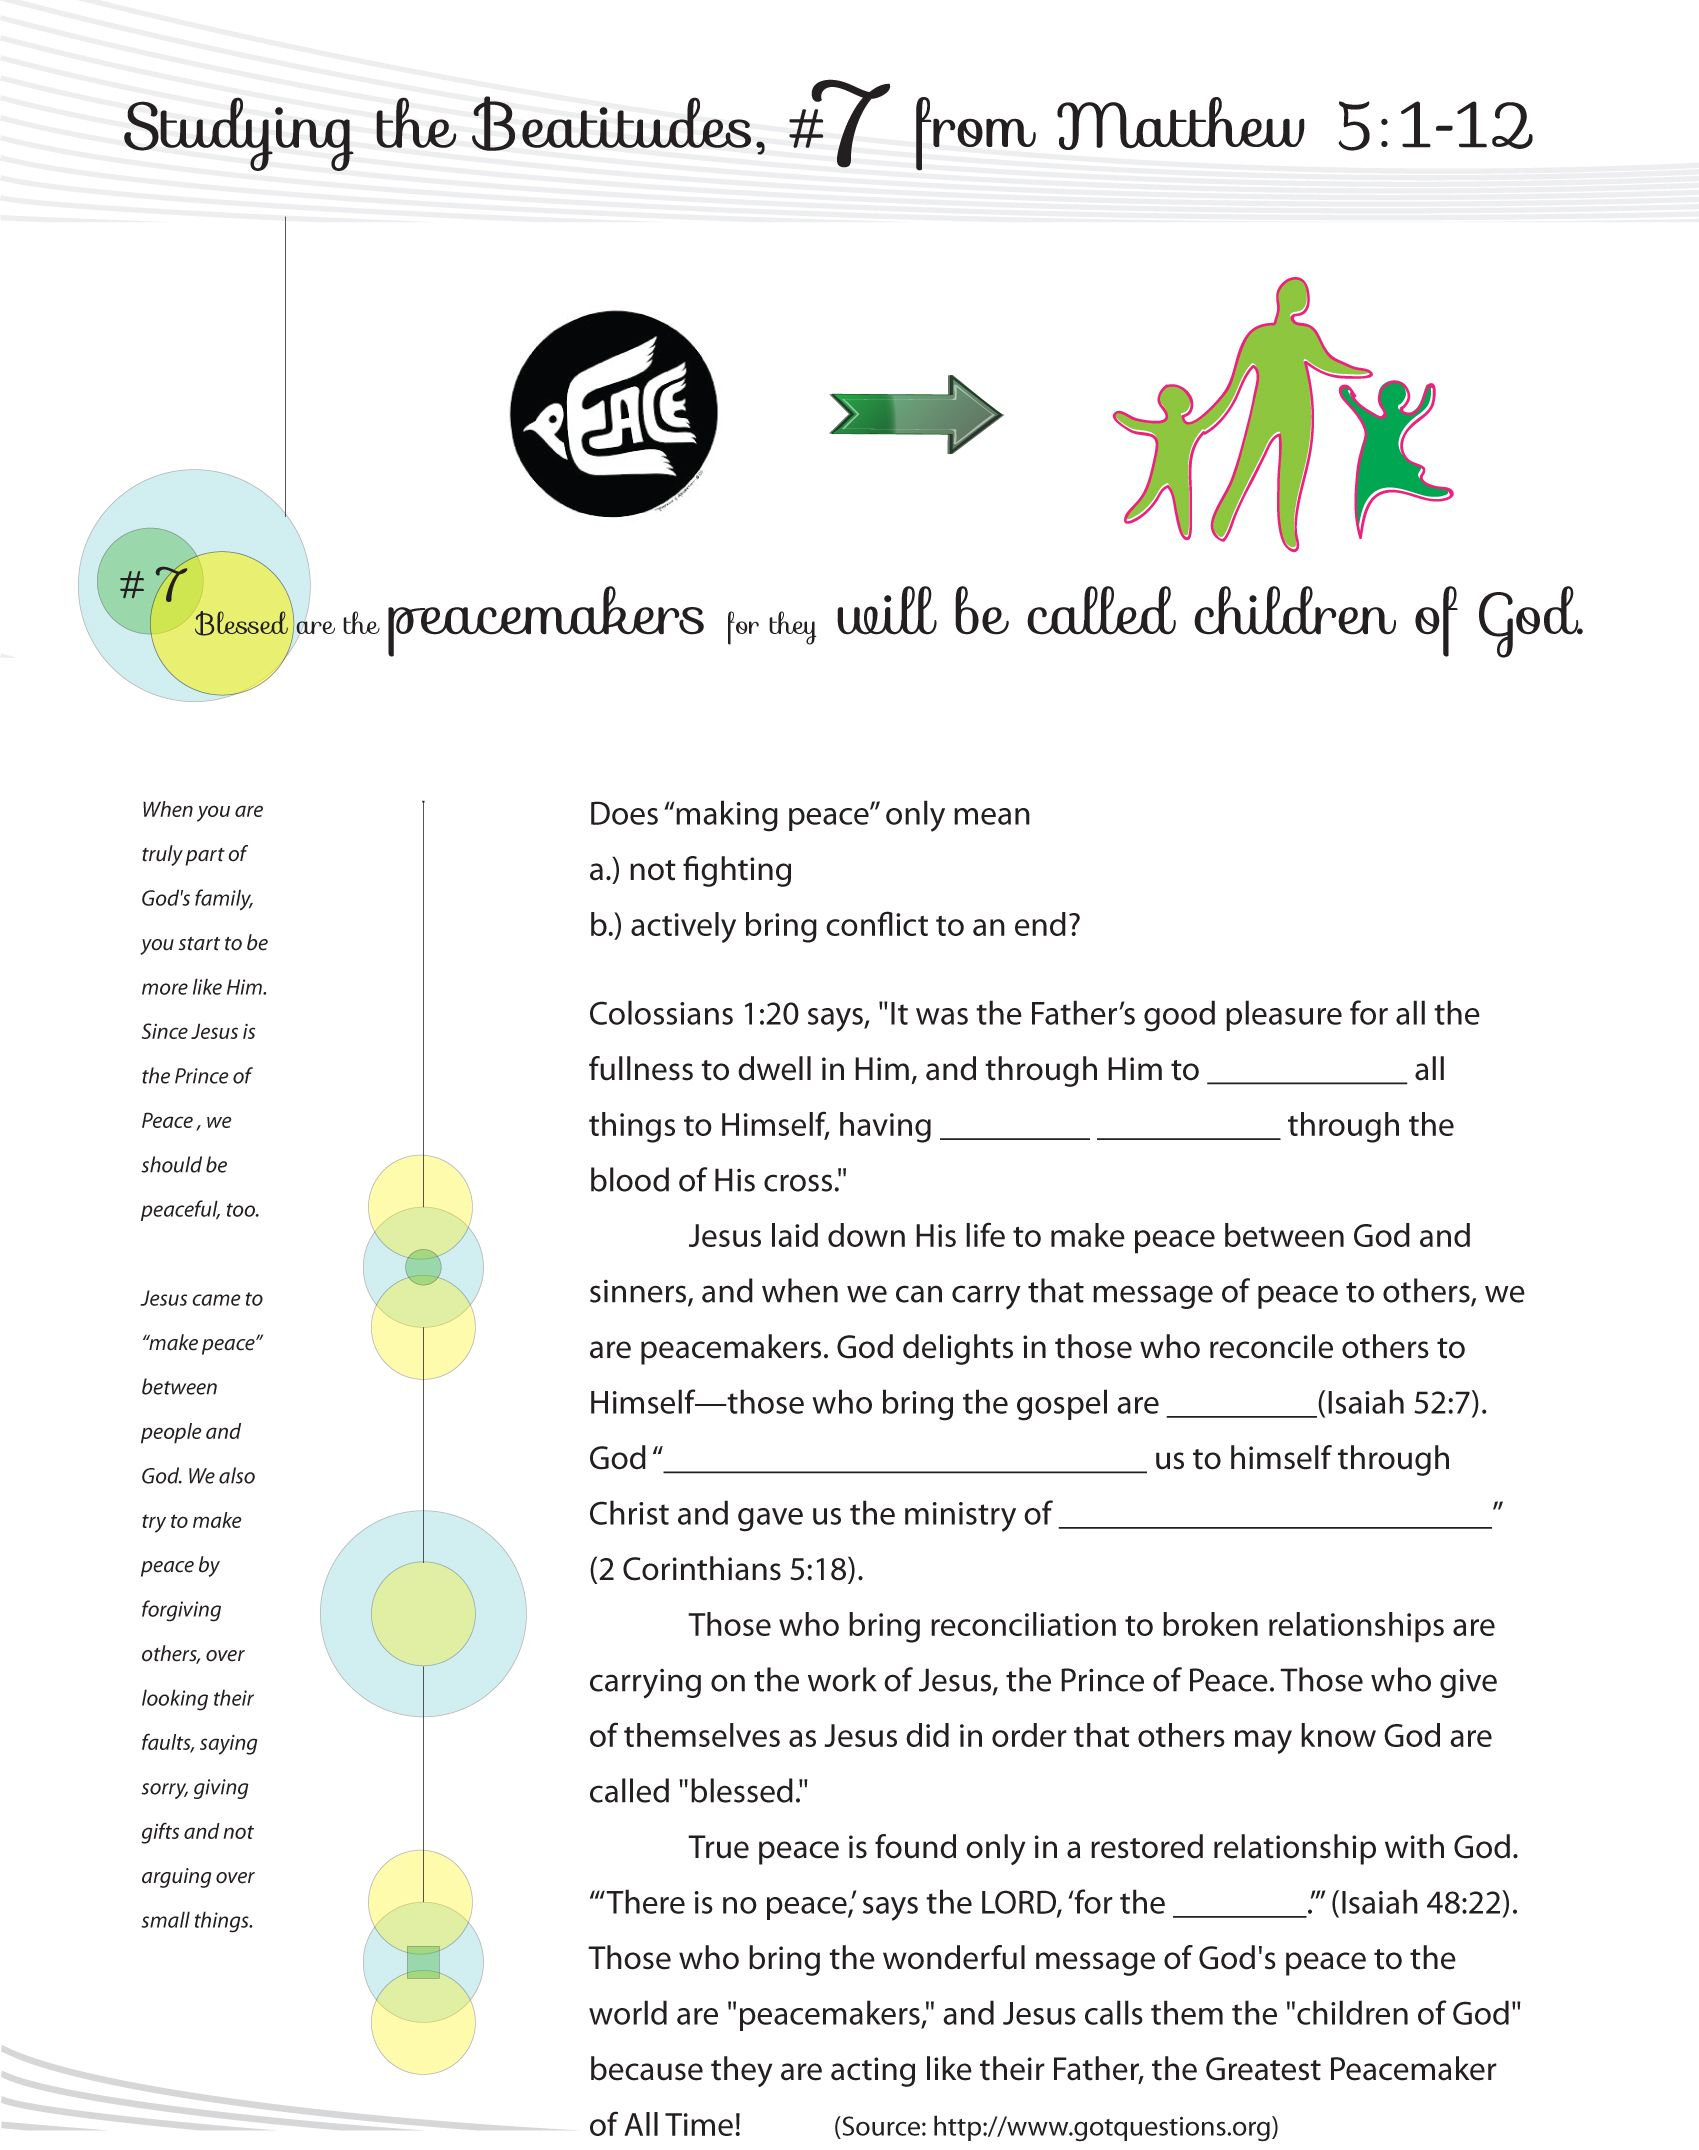 Worksheet To Teach The 7th Beatitude Of The Christian Life From Jesus Teaching His Famous Sermon On The Mo Beatitudes Sunday School Lessons Worksheets For Kids